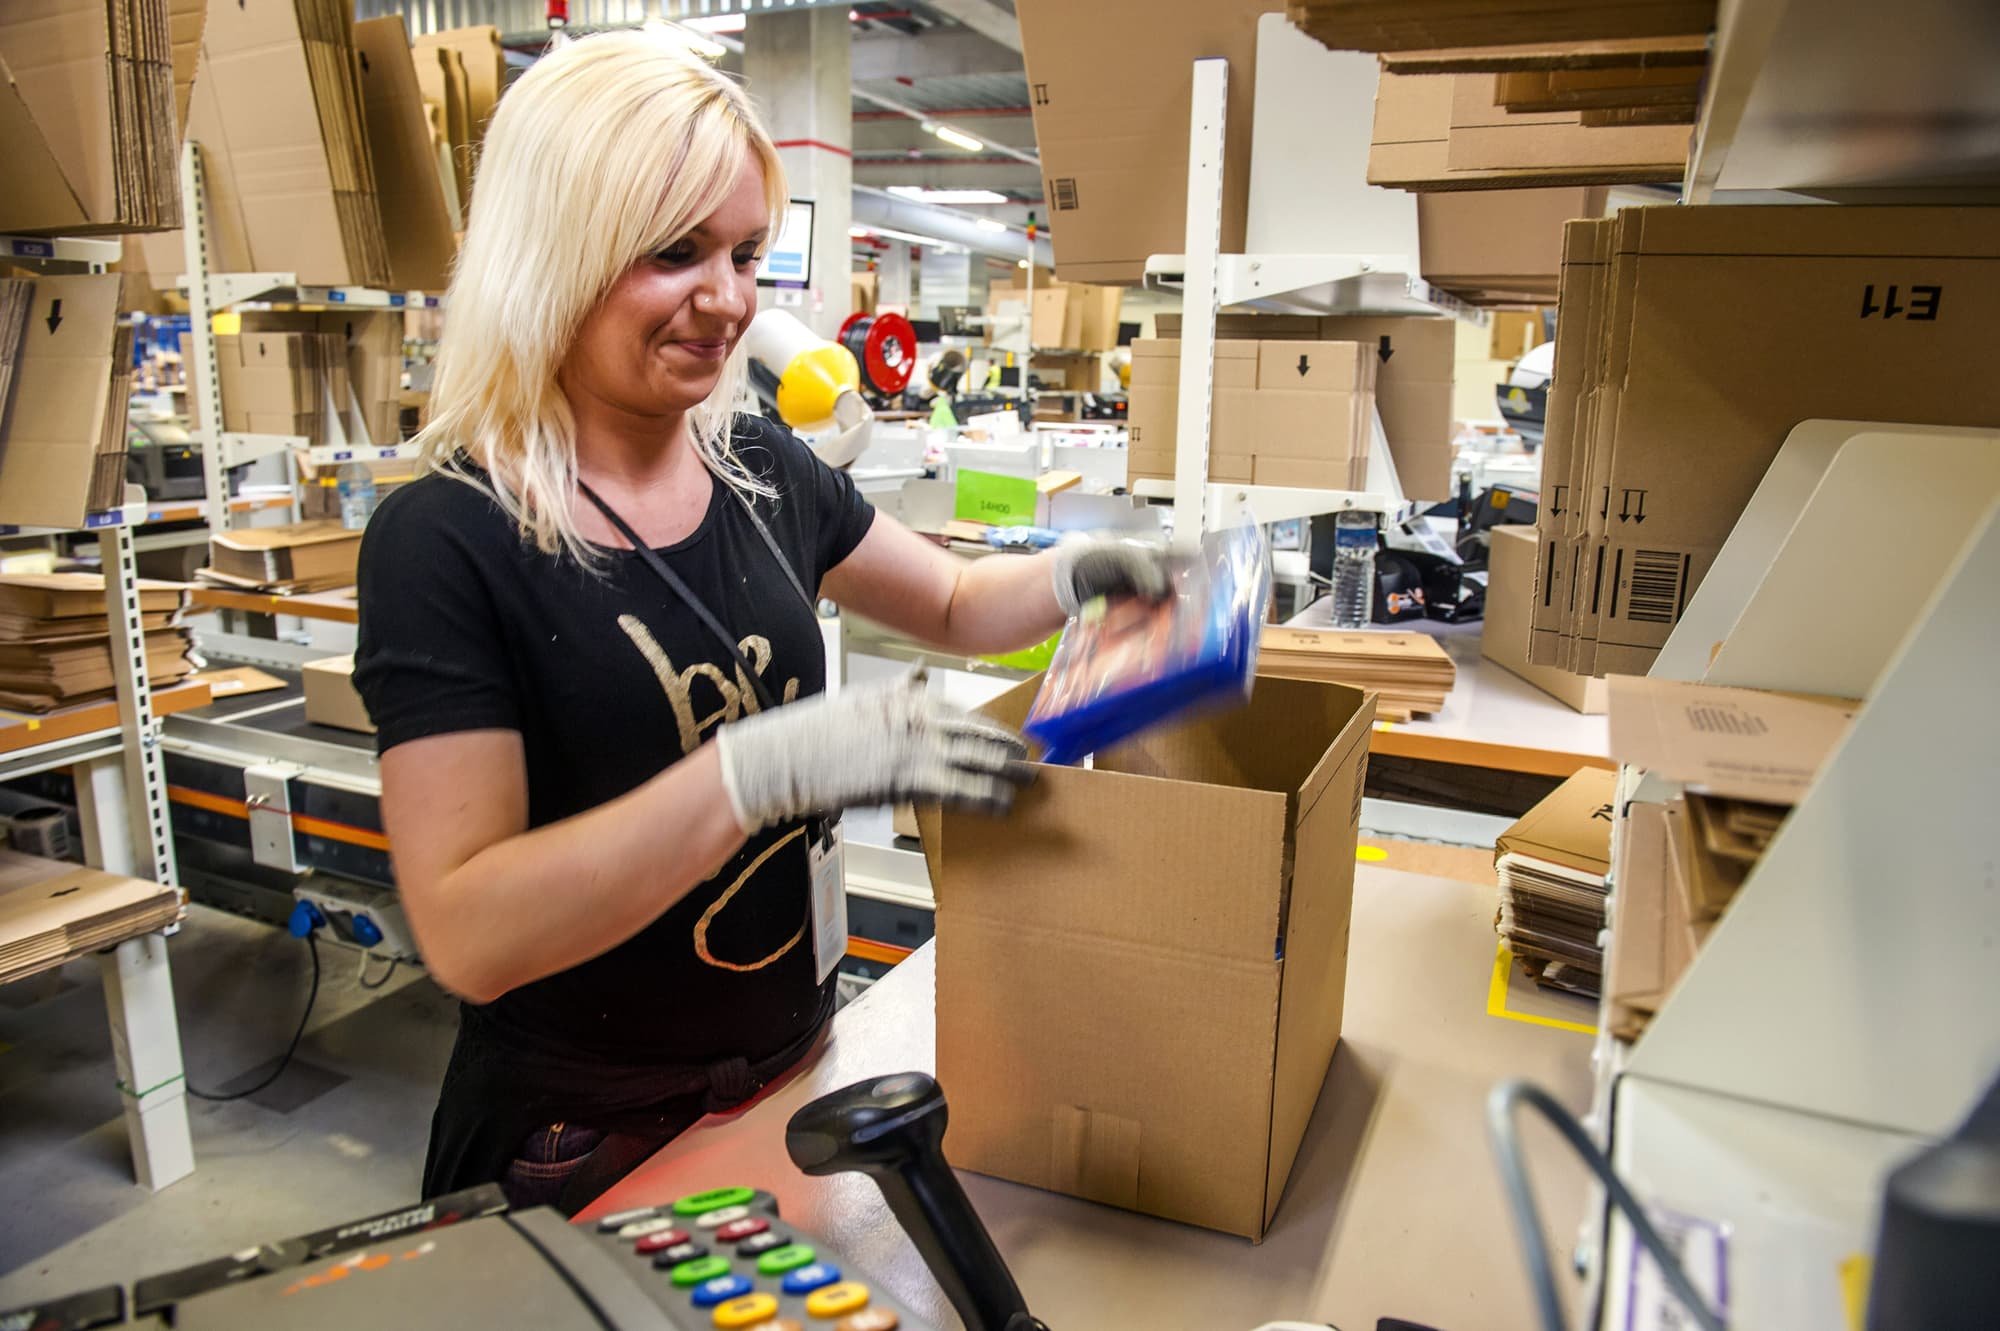 Amazon is hiring over 30,000 workers in these 6 US cities